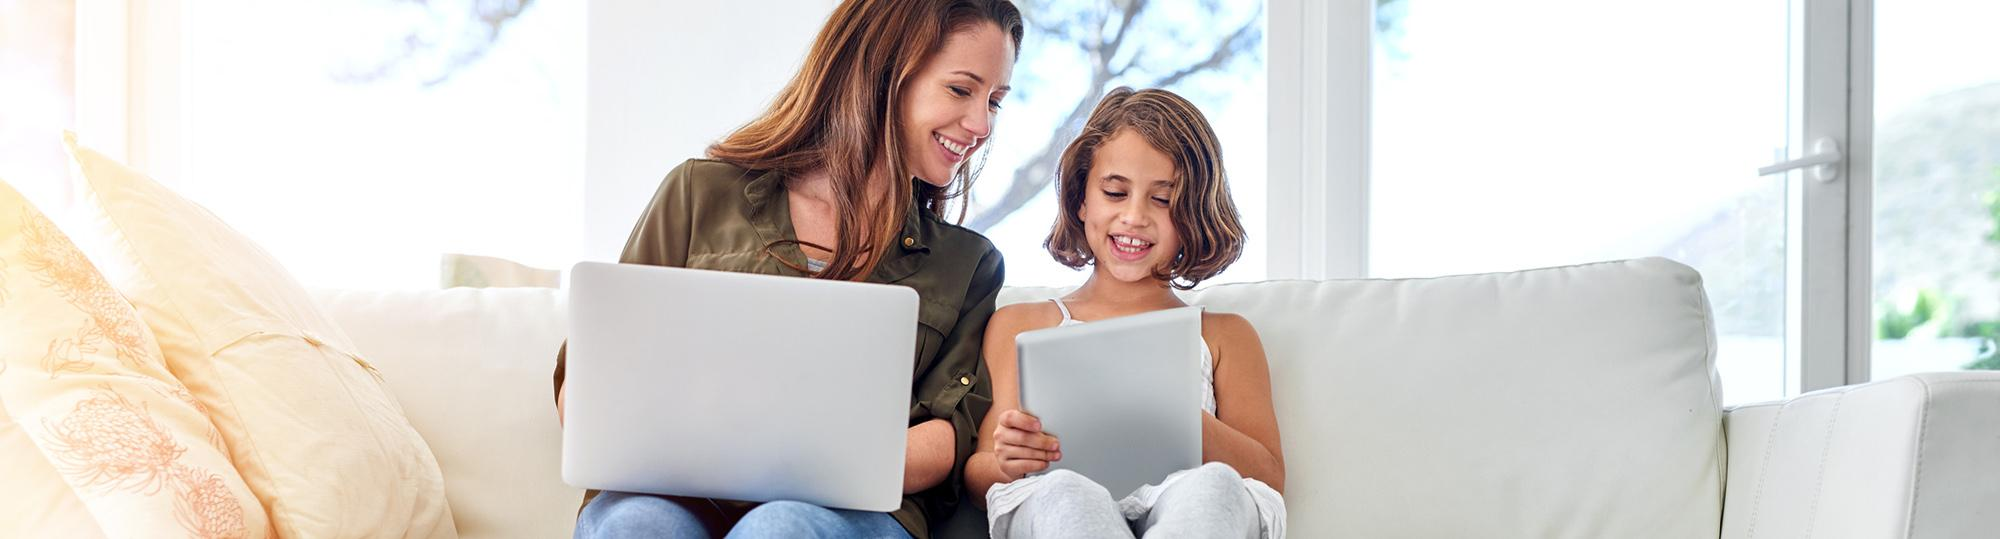 verizon fios deal hero mother daughter on tablet and latptop